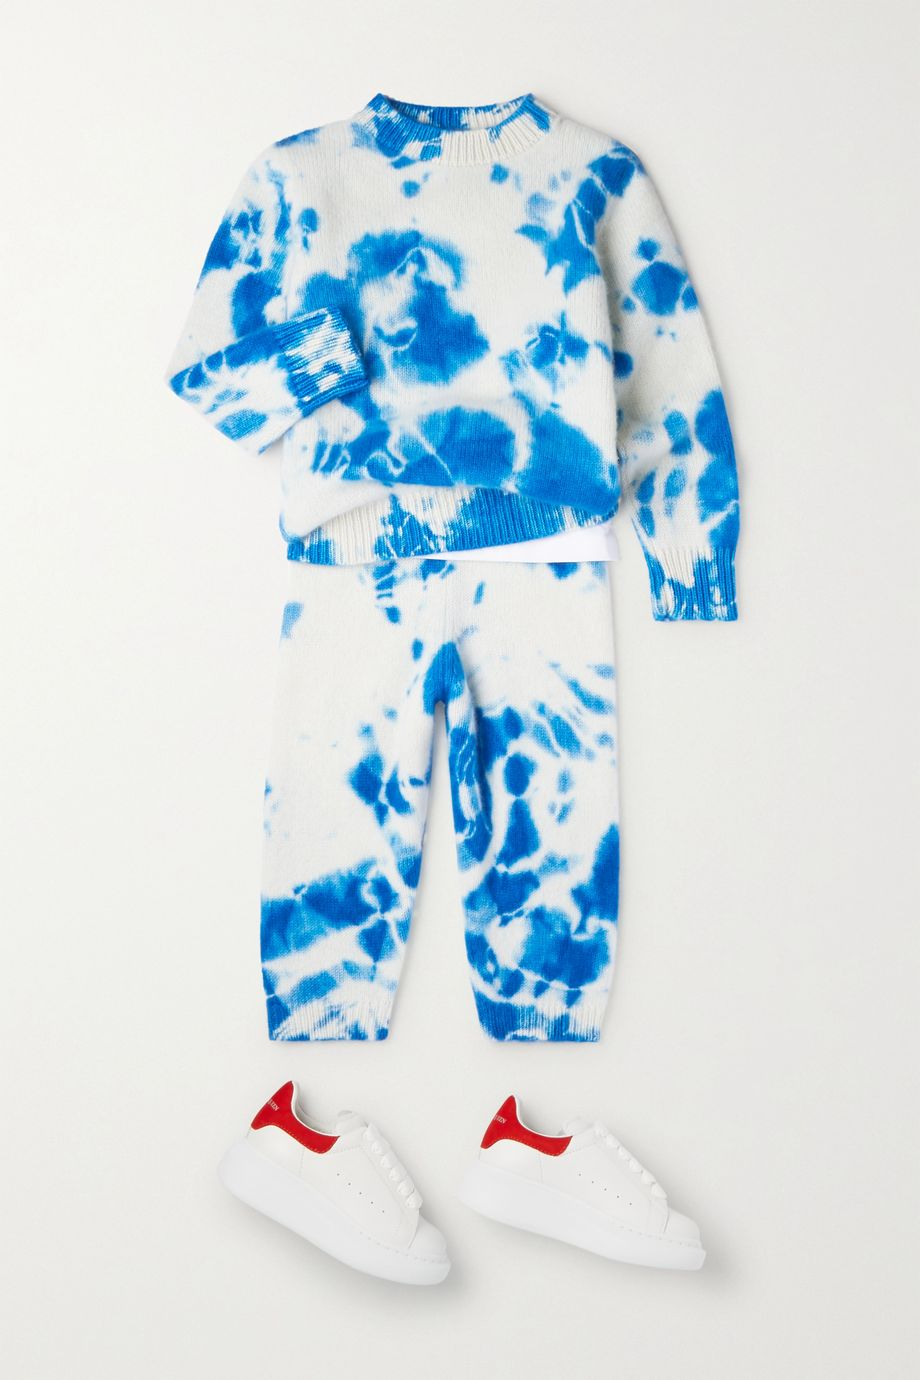 The Elder Statesman Kids Ages 2 - 10 tie-dyed cashmere pants